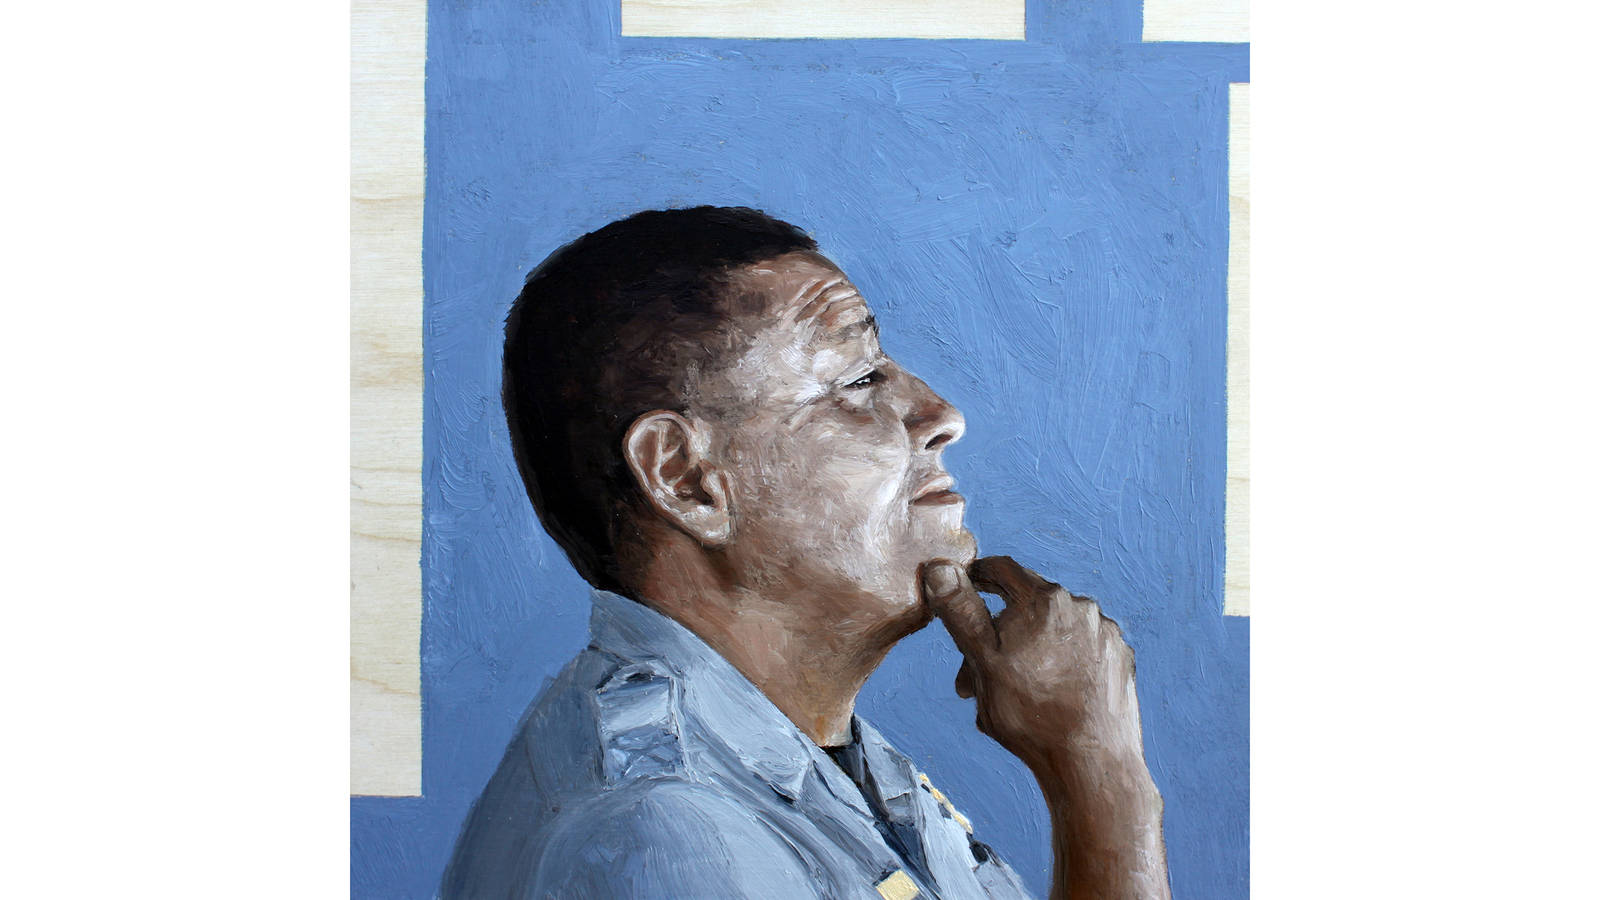 """<h3 style=""""text-align: center; padding: 50px;""""><span class=""""text-Intro-style"""">A 2019 oil-on-wood portrait of Alvis Burbank, a ranger at Hubbell Trading Post National Historic Site in Arizona, which is surrounded by the Navajo Nation.</span></h3>"""